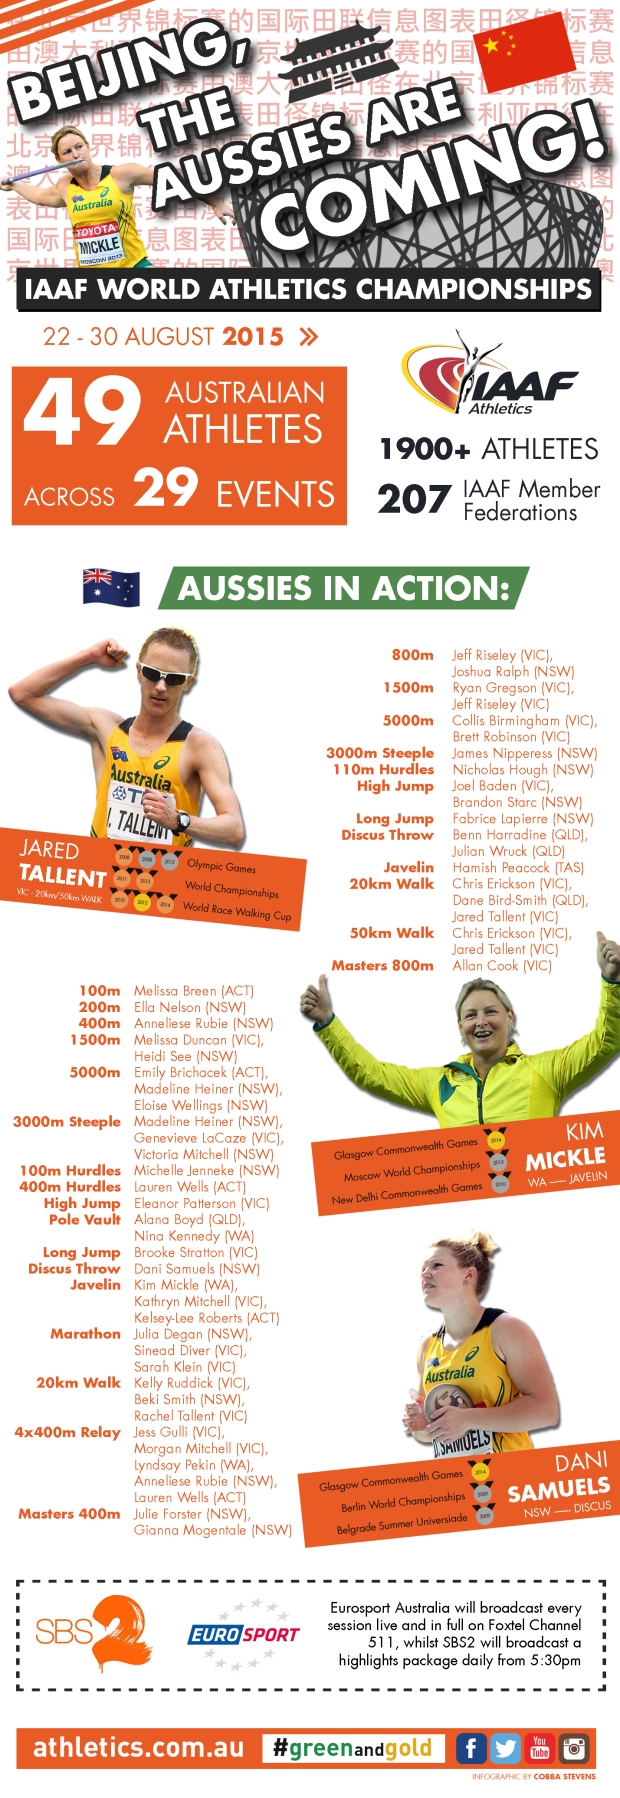 Beijing, the Aussies are Coming!